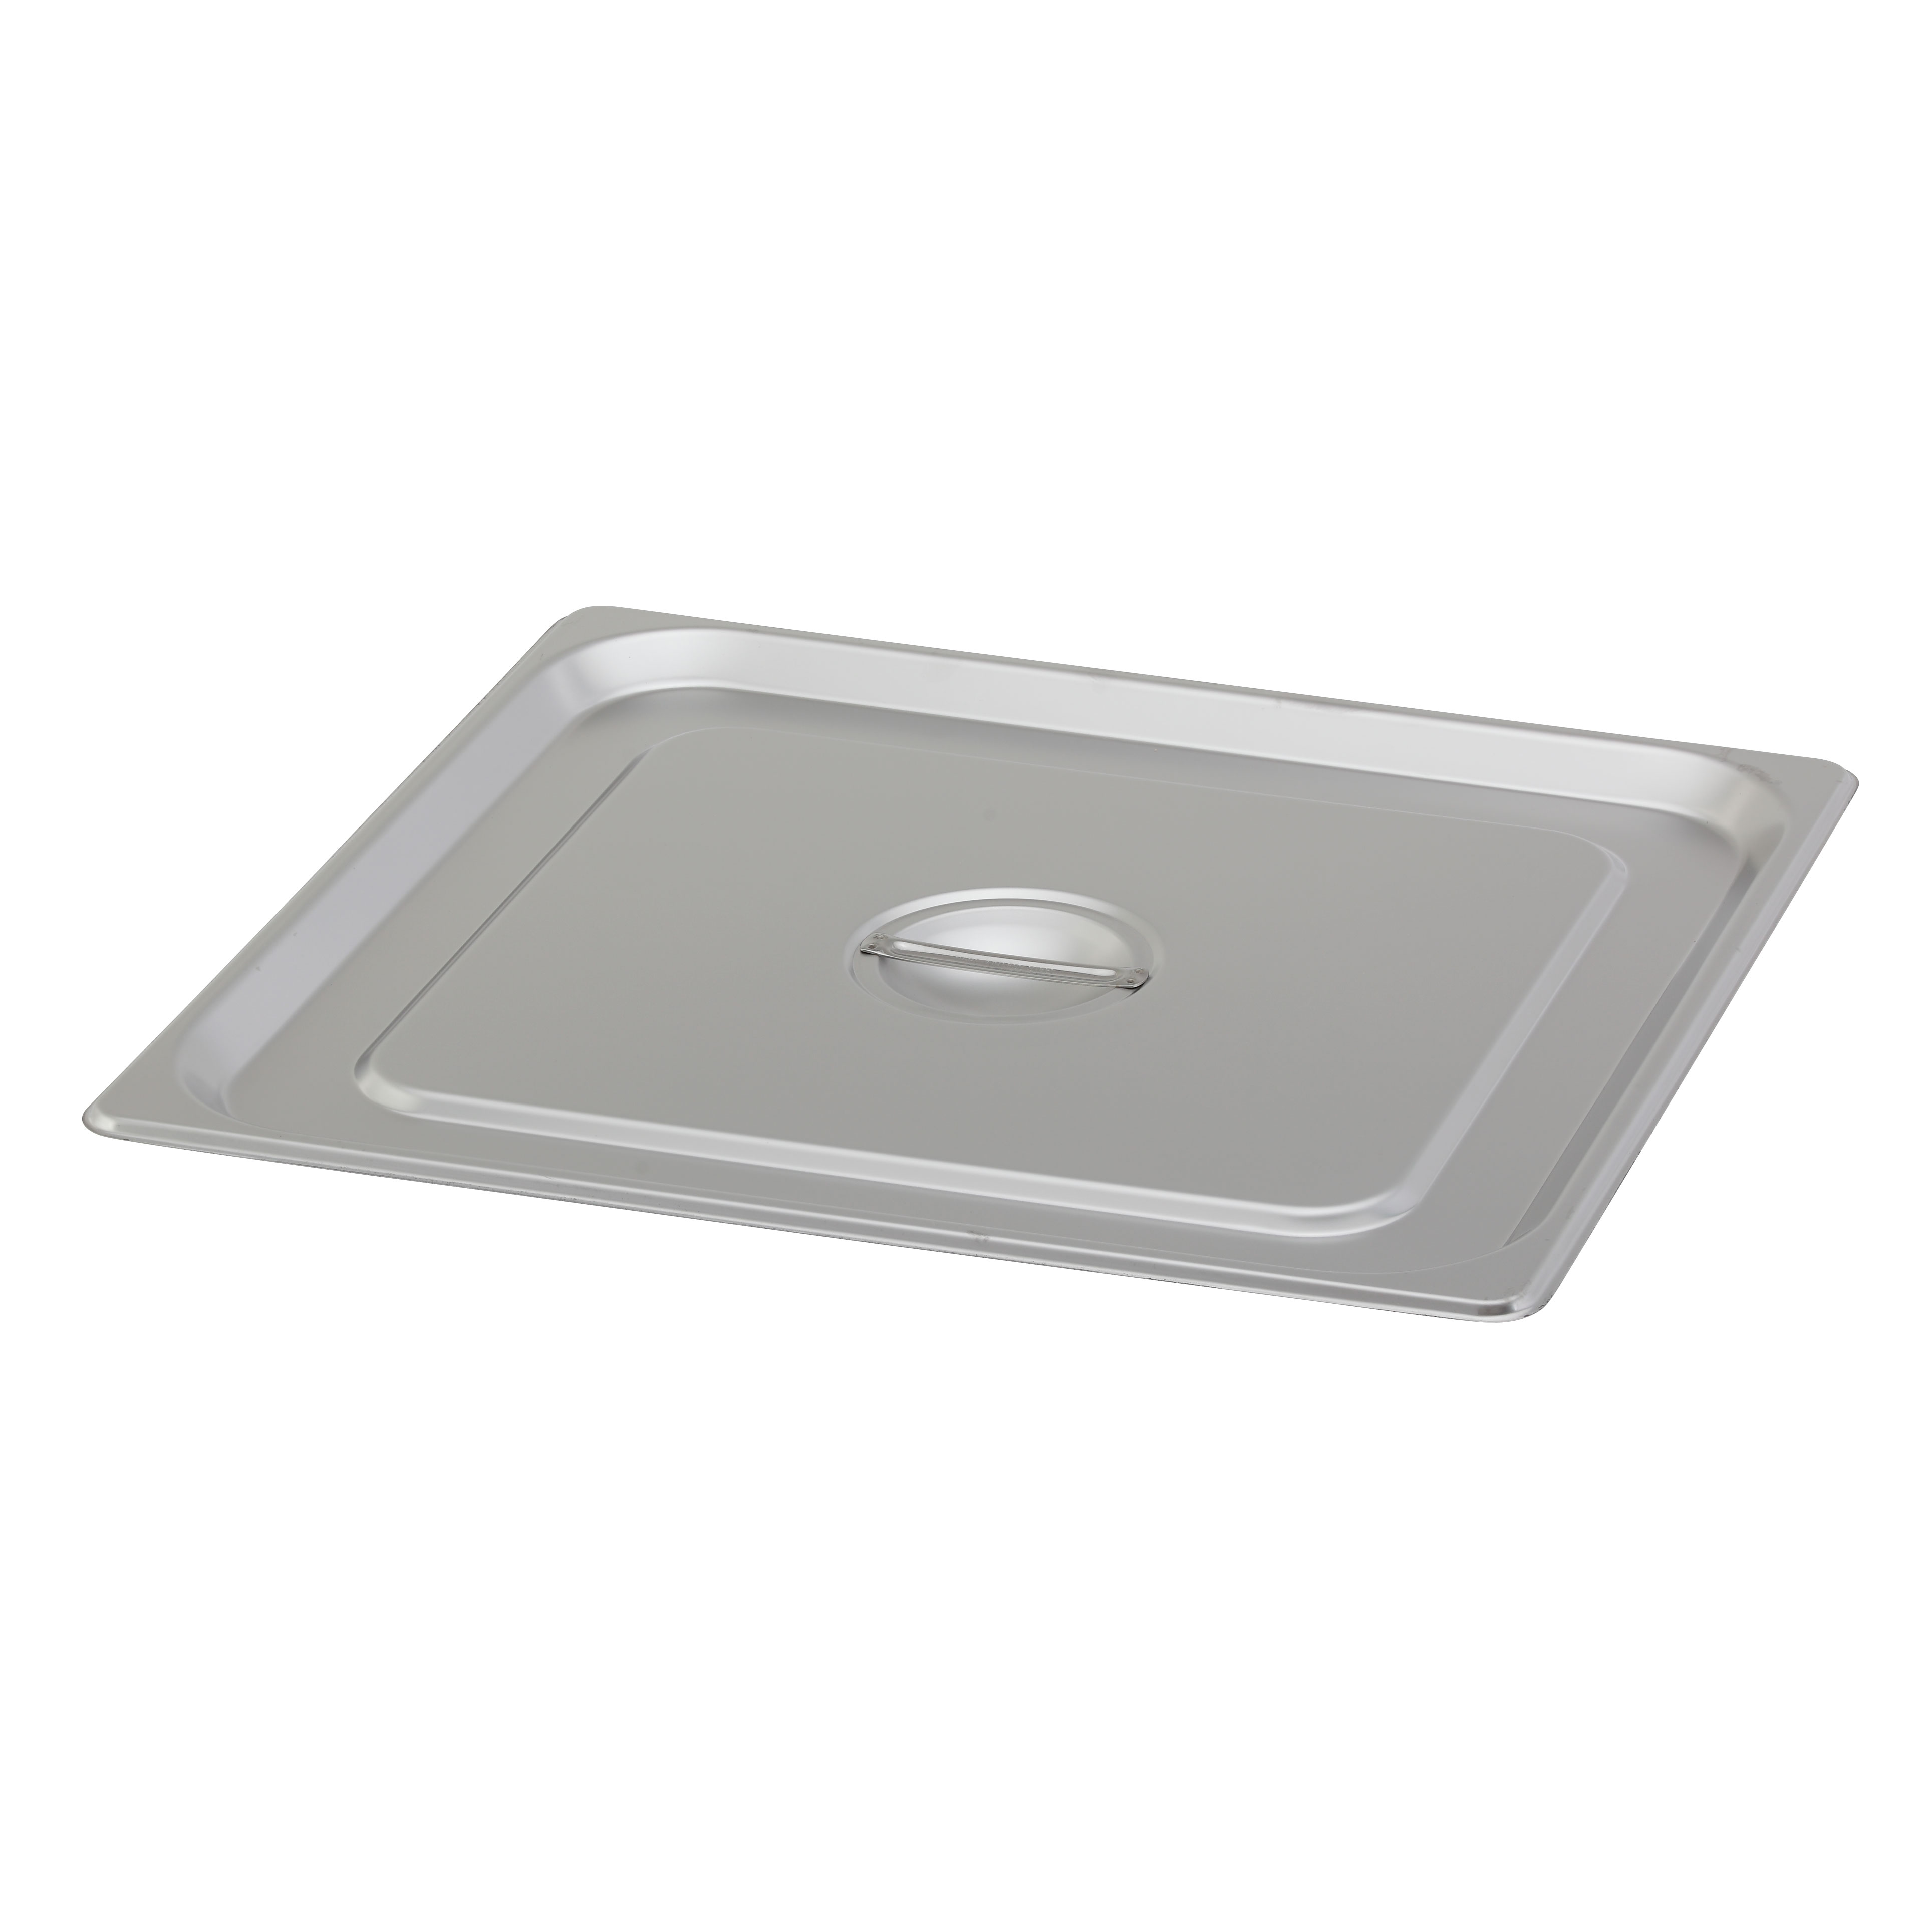 Royal Industries ROY STP 2300 1 steam table pan cover, stainless steel